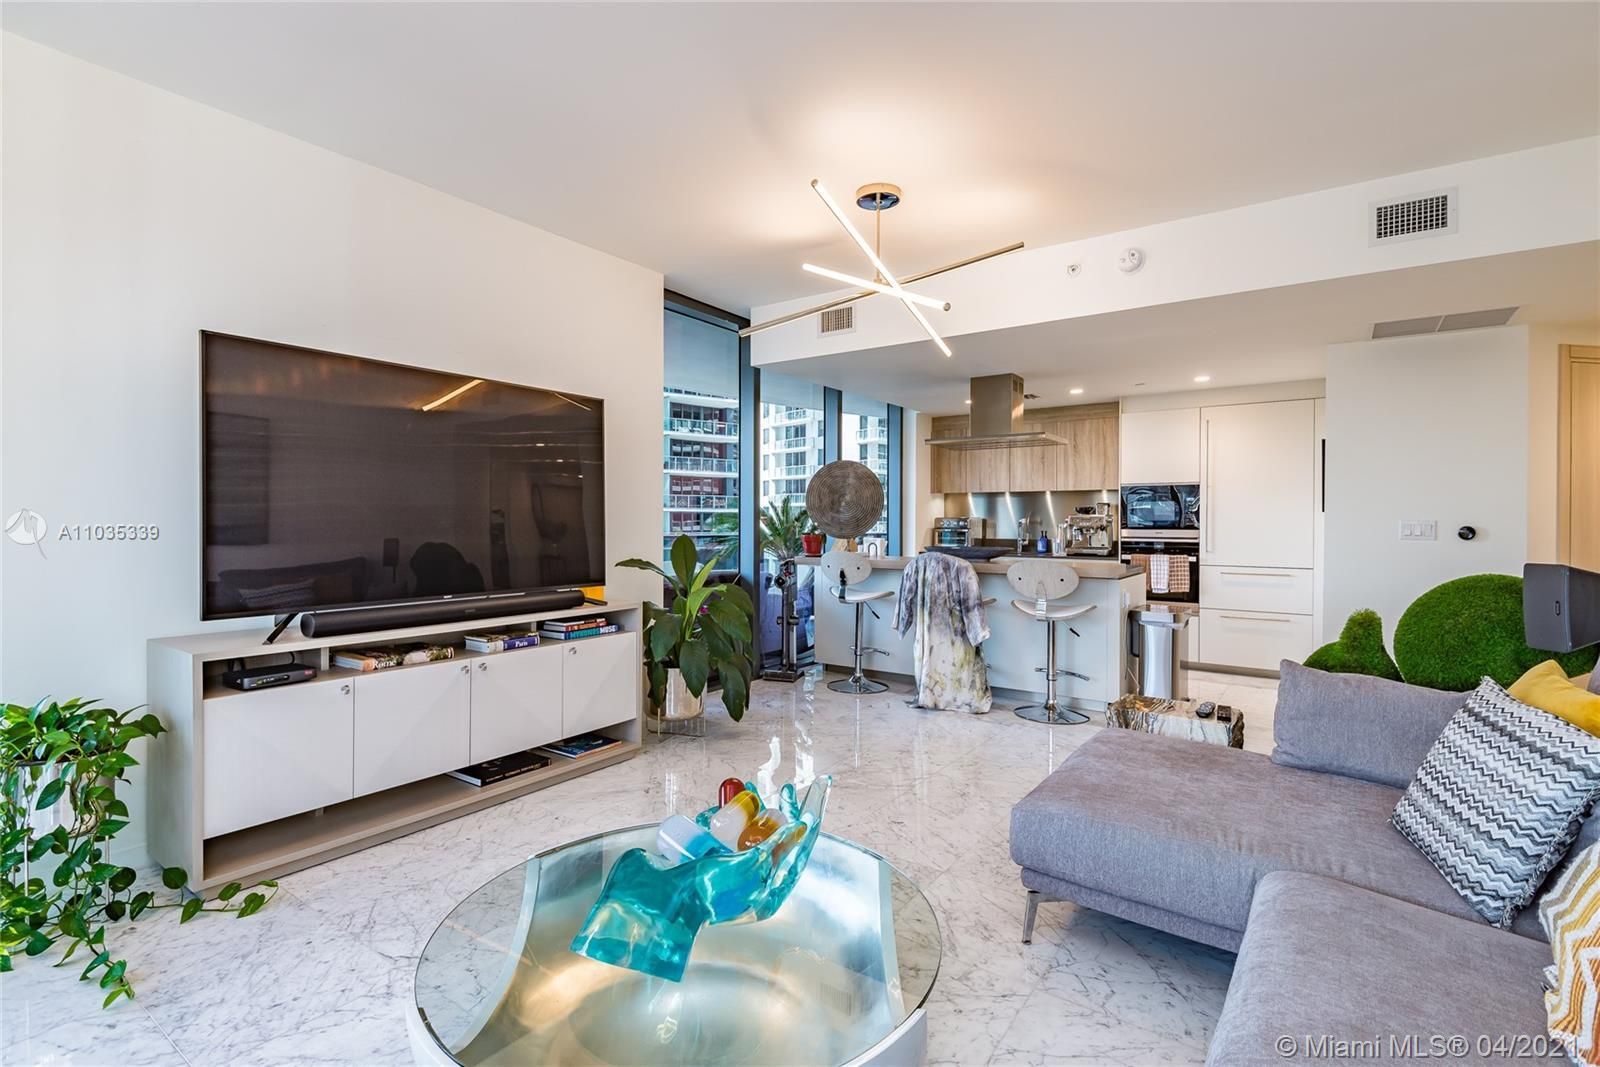 Live, work and play in this stunning, one of a kind, sophisticated urban oasis in the iconic Brickel